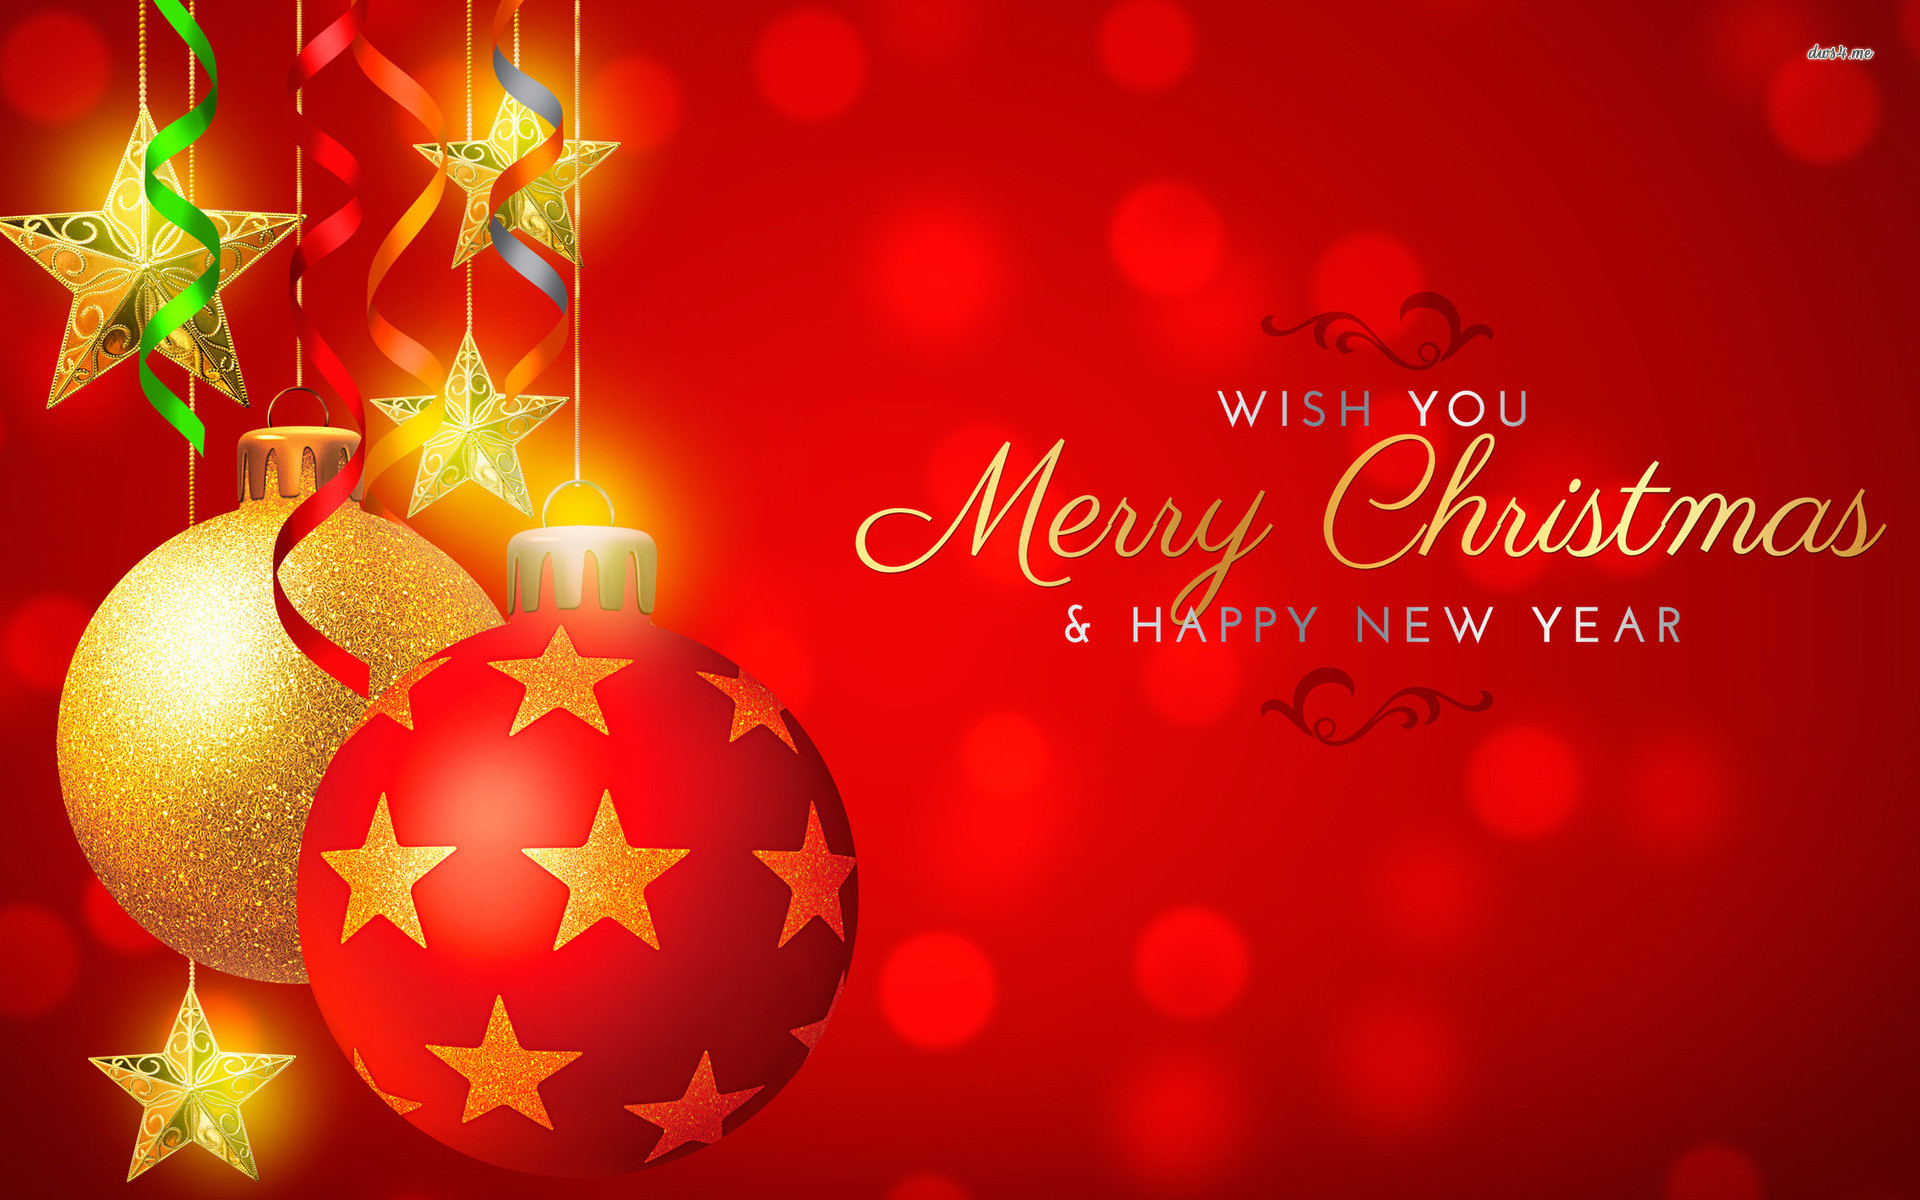 10 Merry Christmas Wallpapers Full HD for Desktop PC   All for Windows .